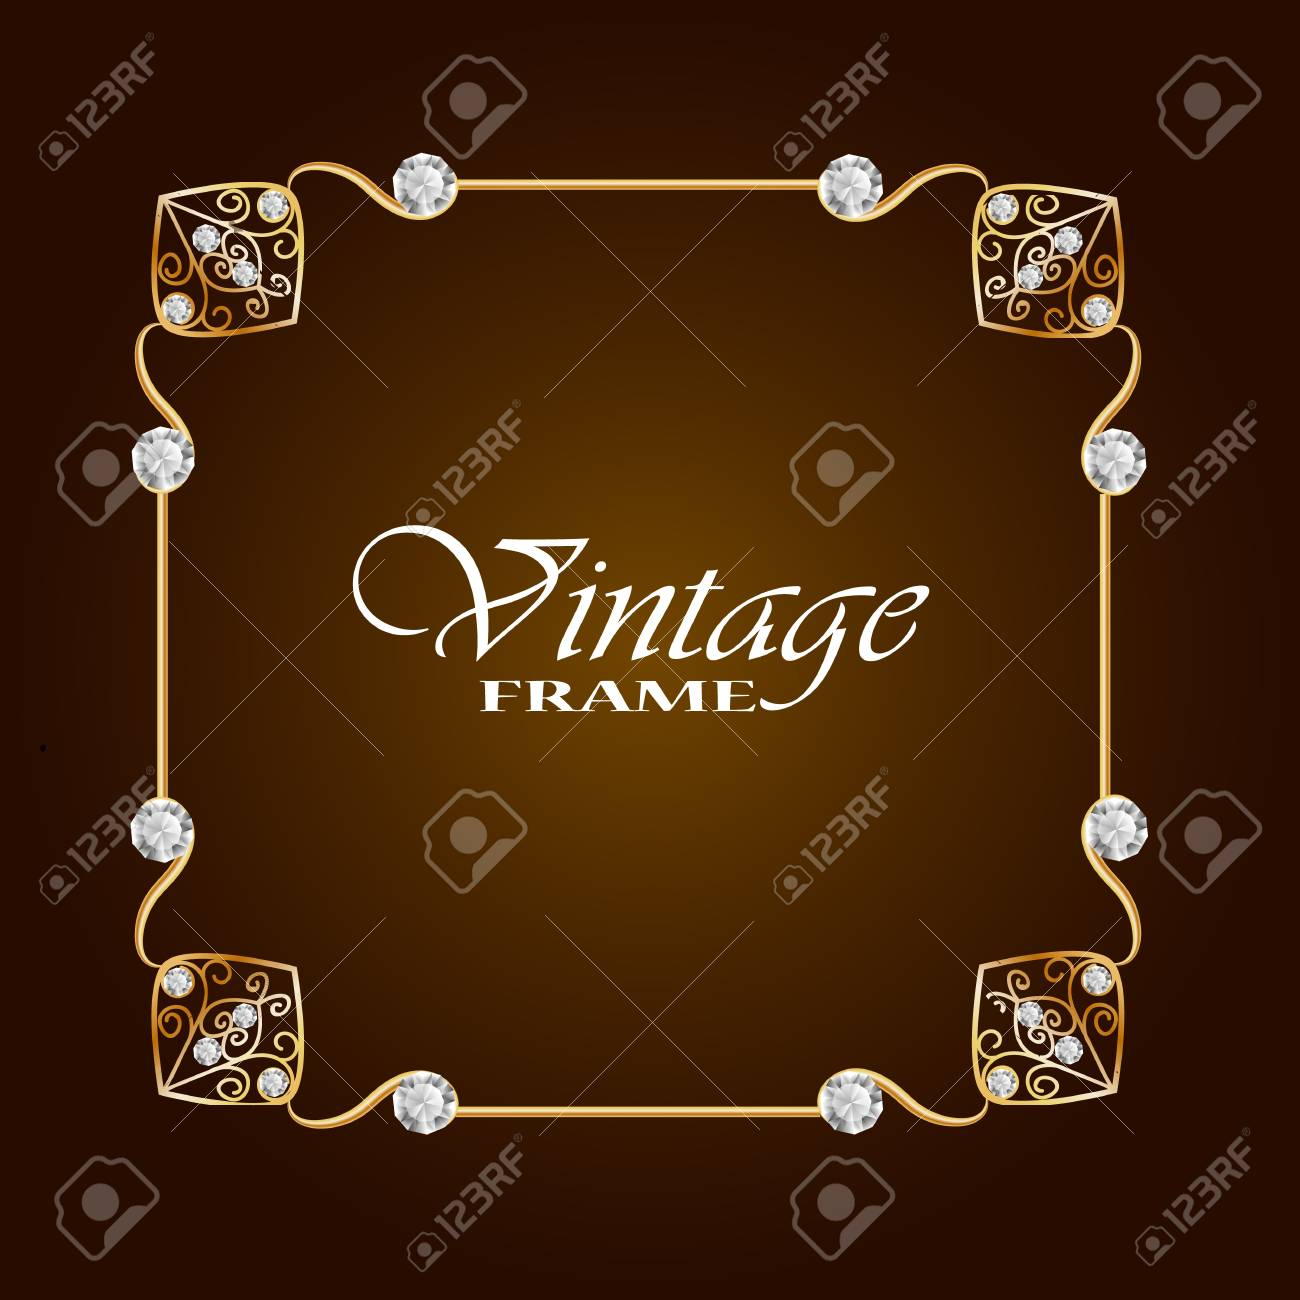 Gold Frame With Diamond Vintage Frame Round Frame With Flowers Jewelry Frame Vector Frame Can Use For Greeting Card Or Invitation Template